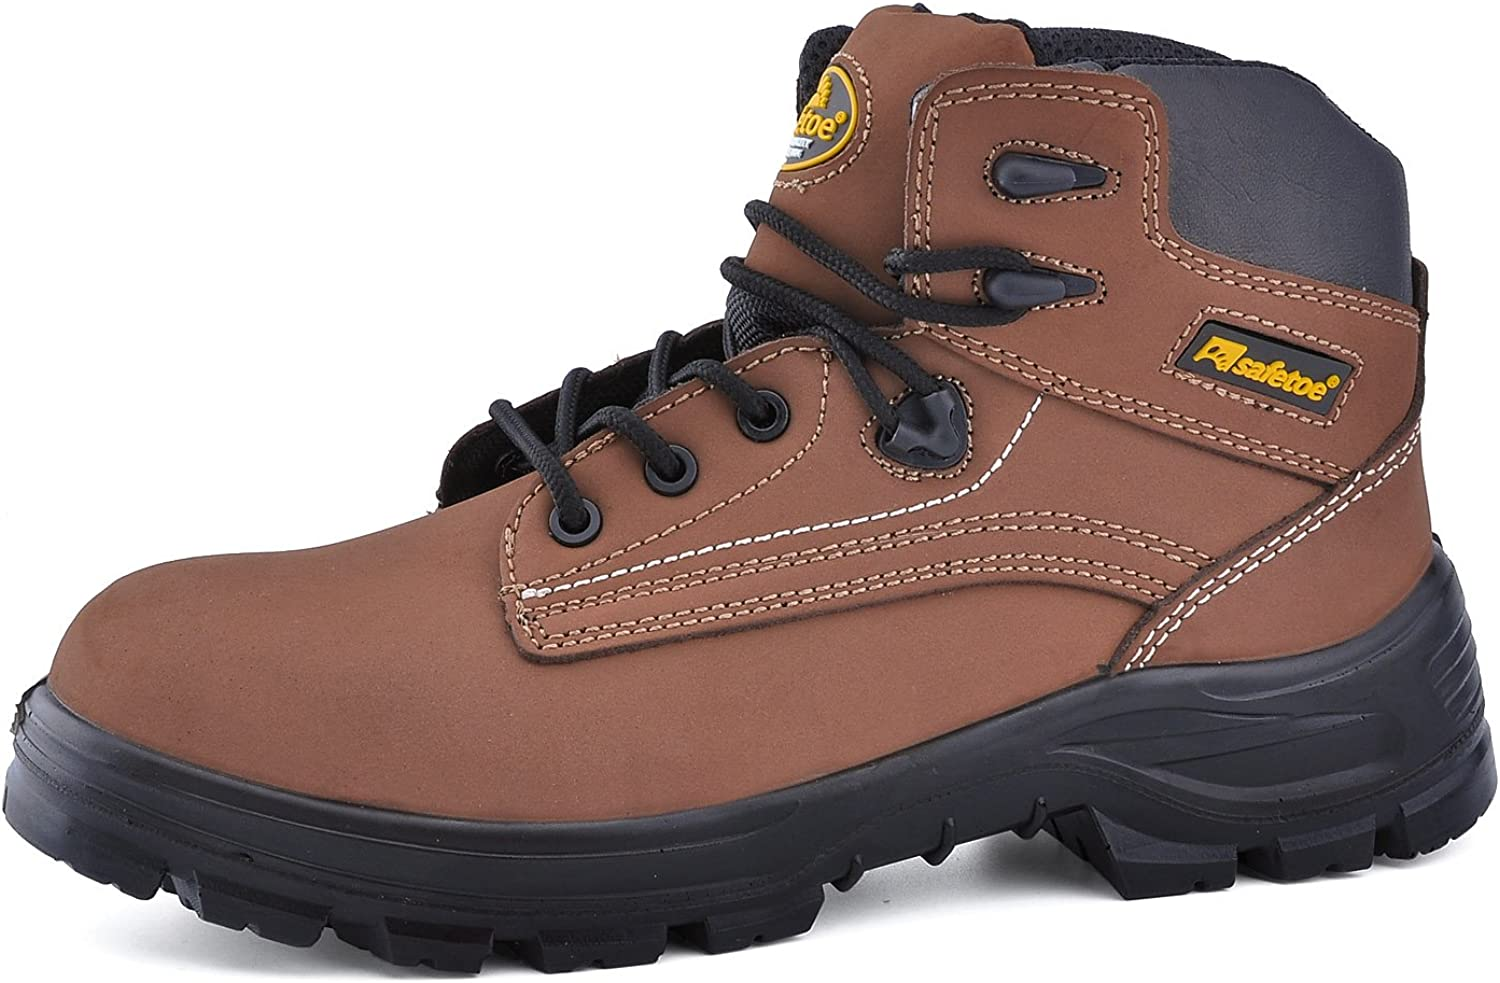 SAFETOE Mens Steel Toe Work Boots - M8356 Waterproof Leather Safety Boots Slip on Safety shoes for Women